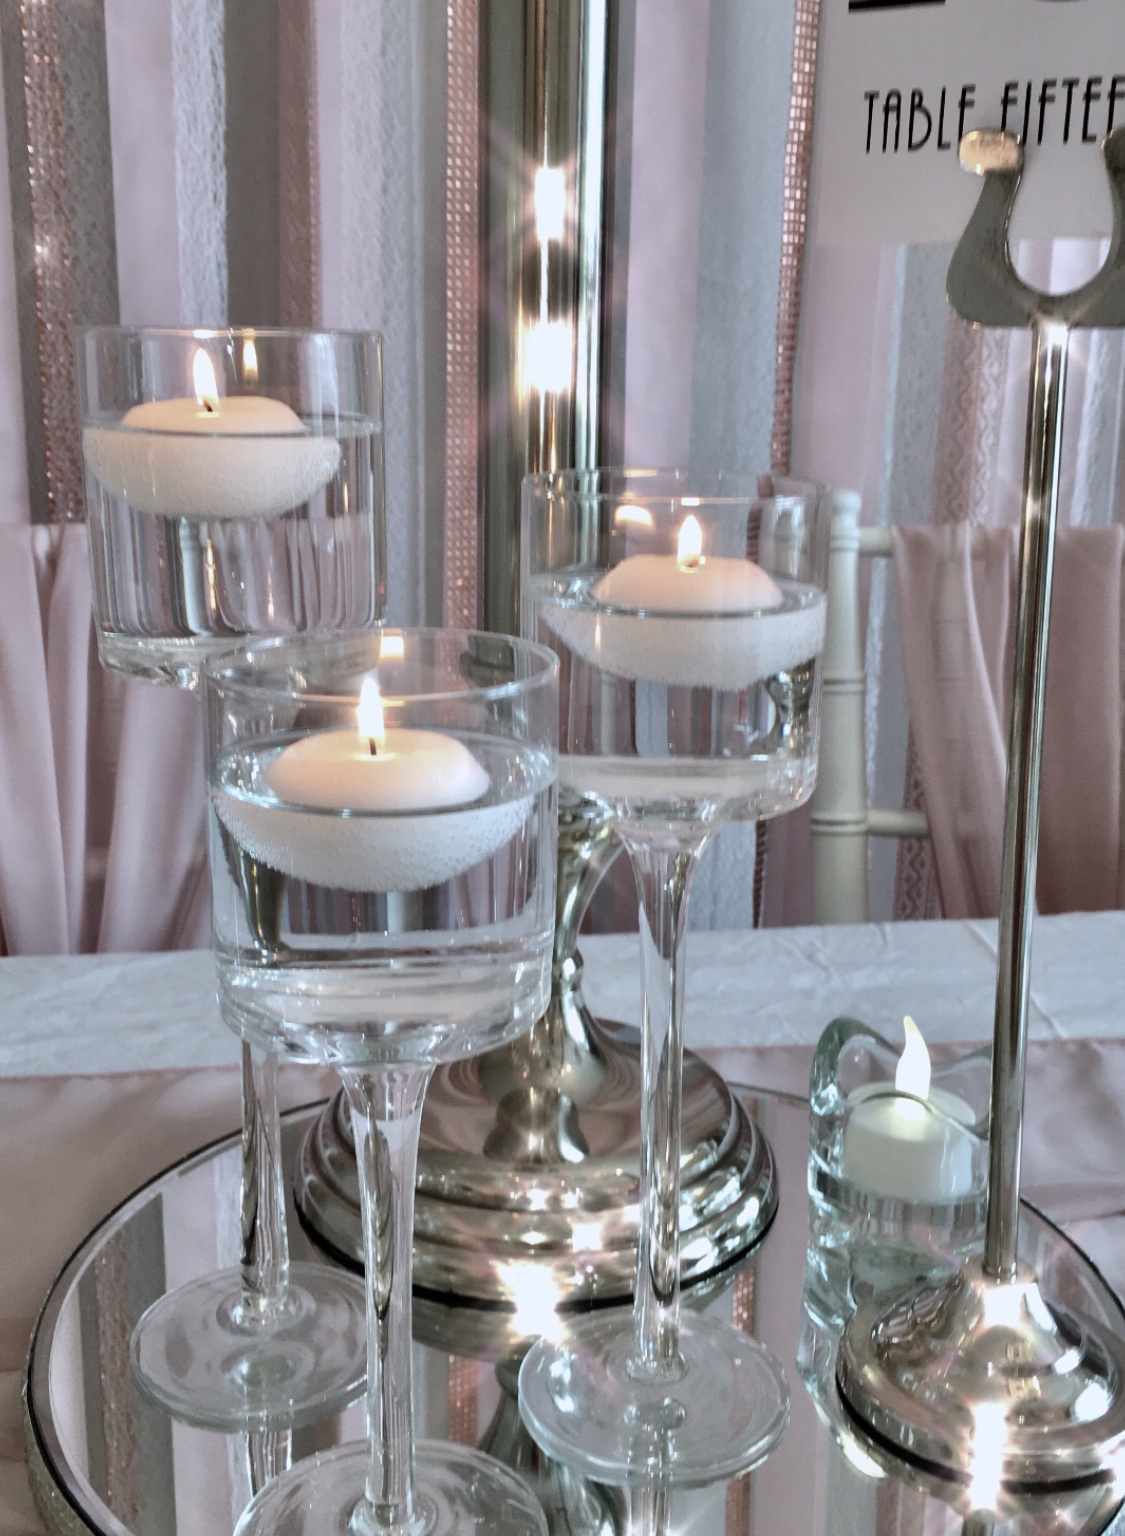 Tall glass floating candle holders